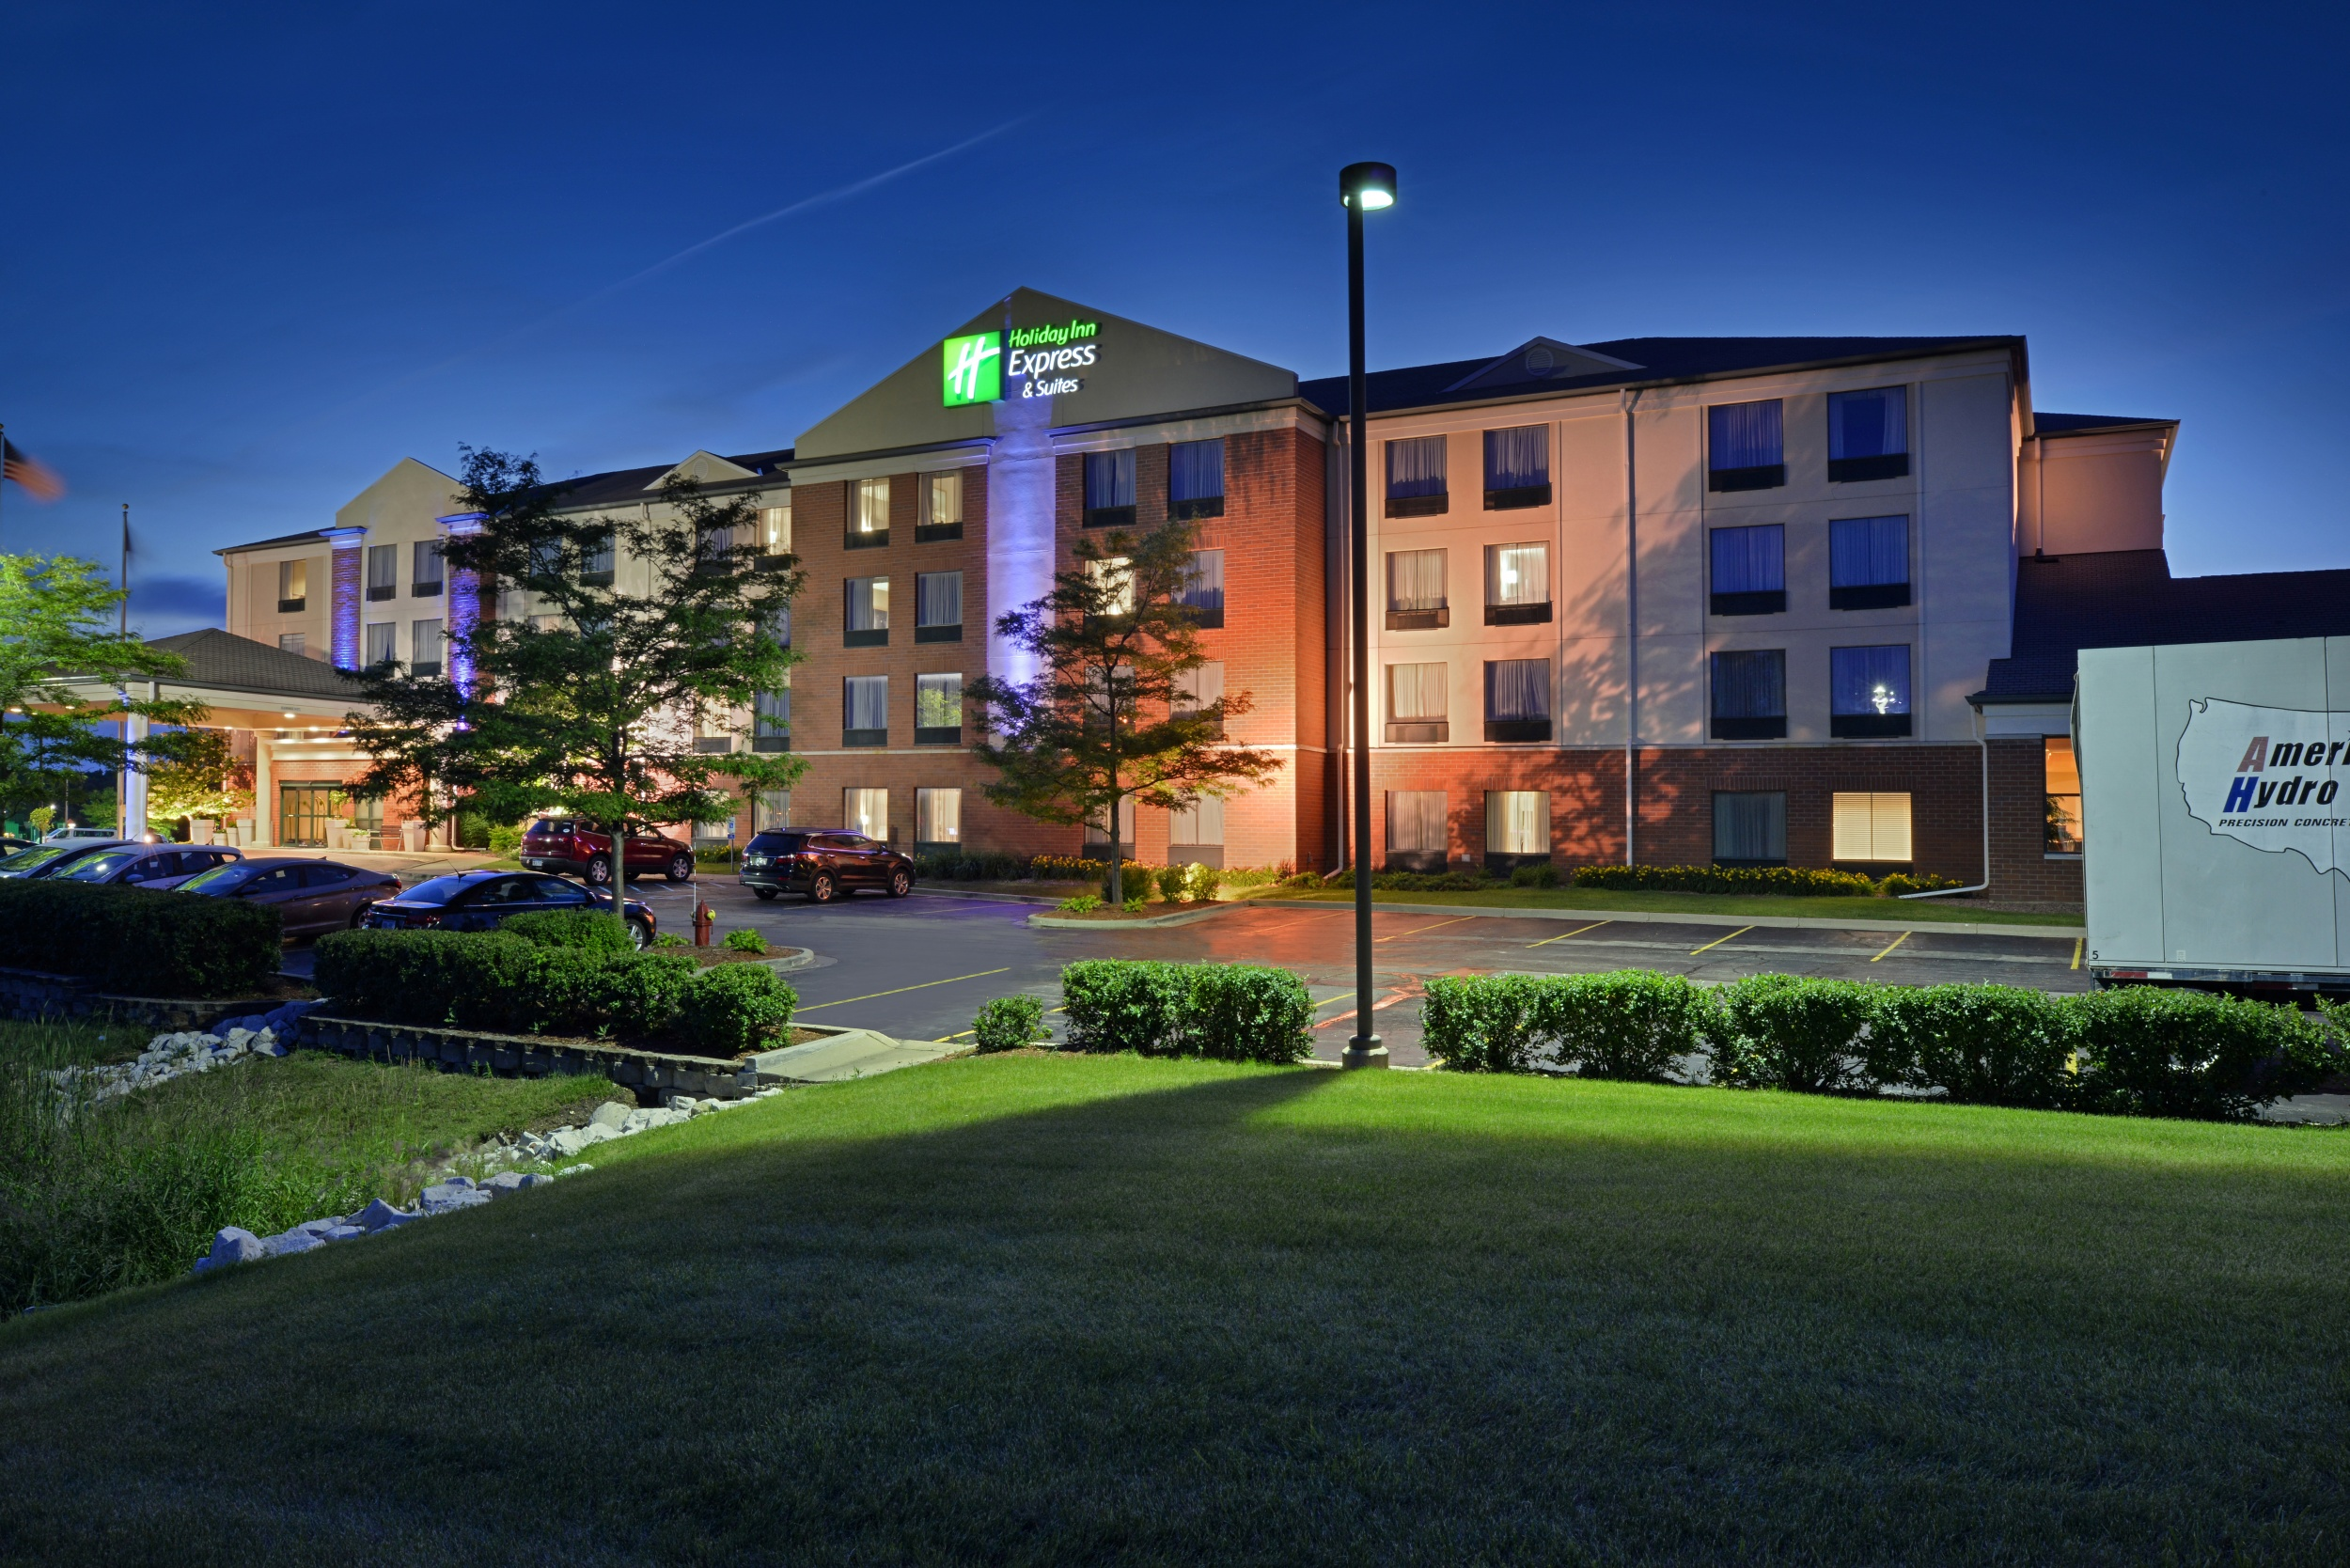 Berlin Hotel Express By Holiday Inn